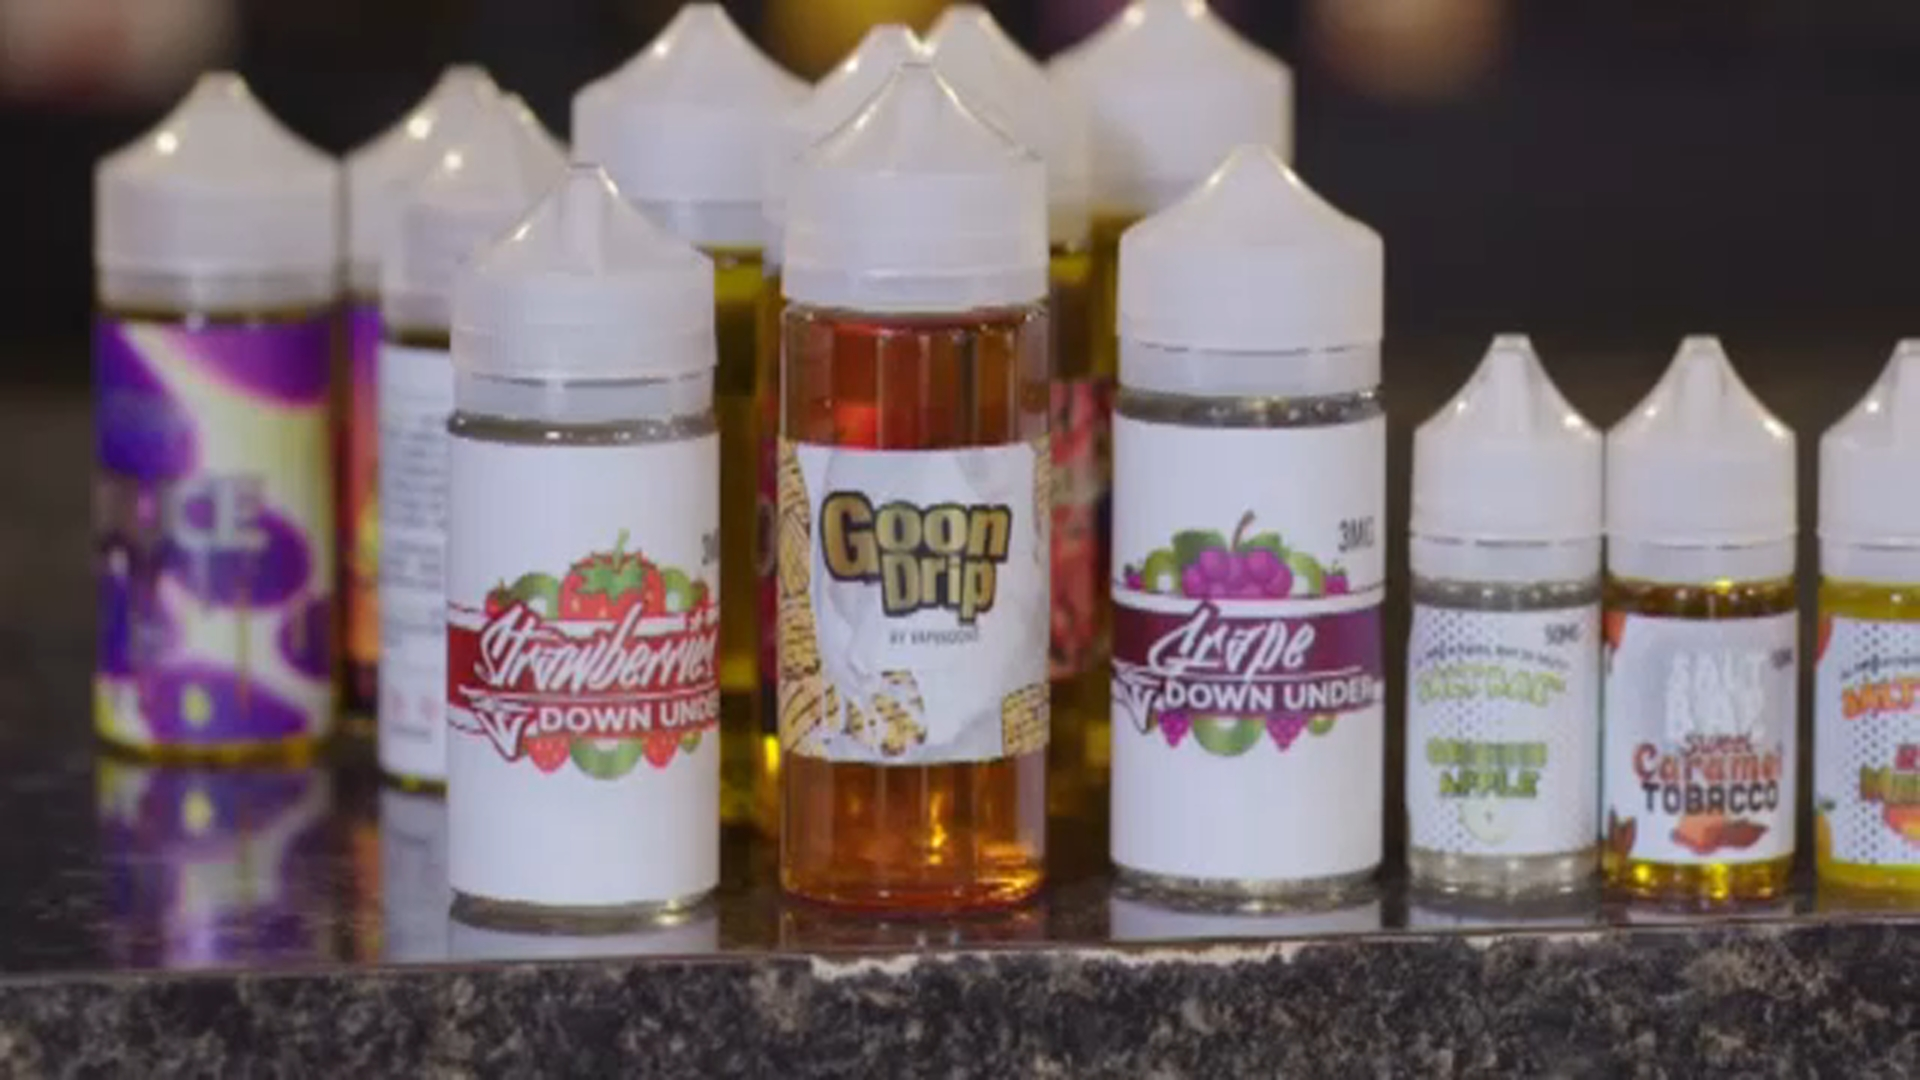 New York state approves emergency ban on flavored vaping products